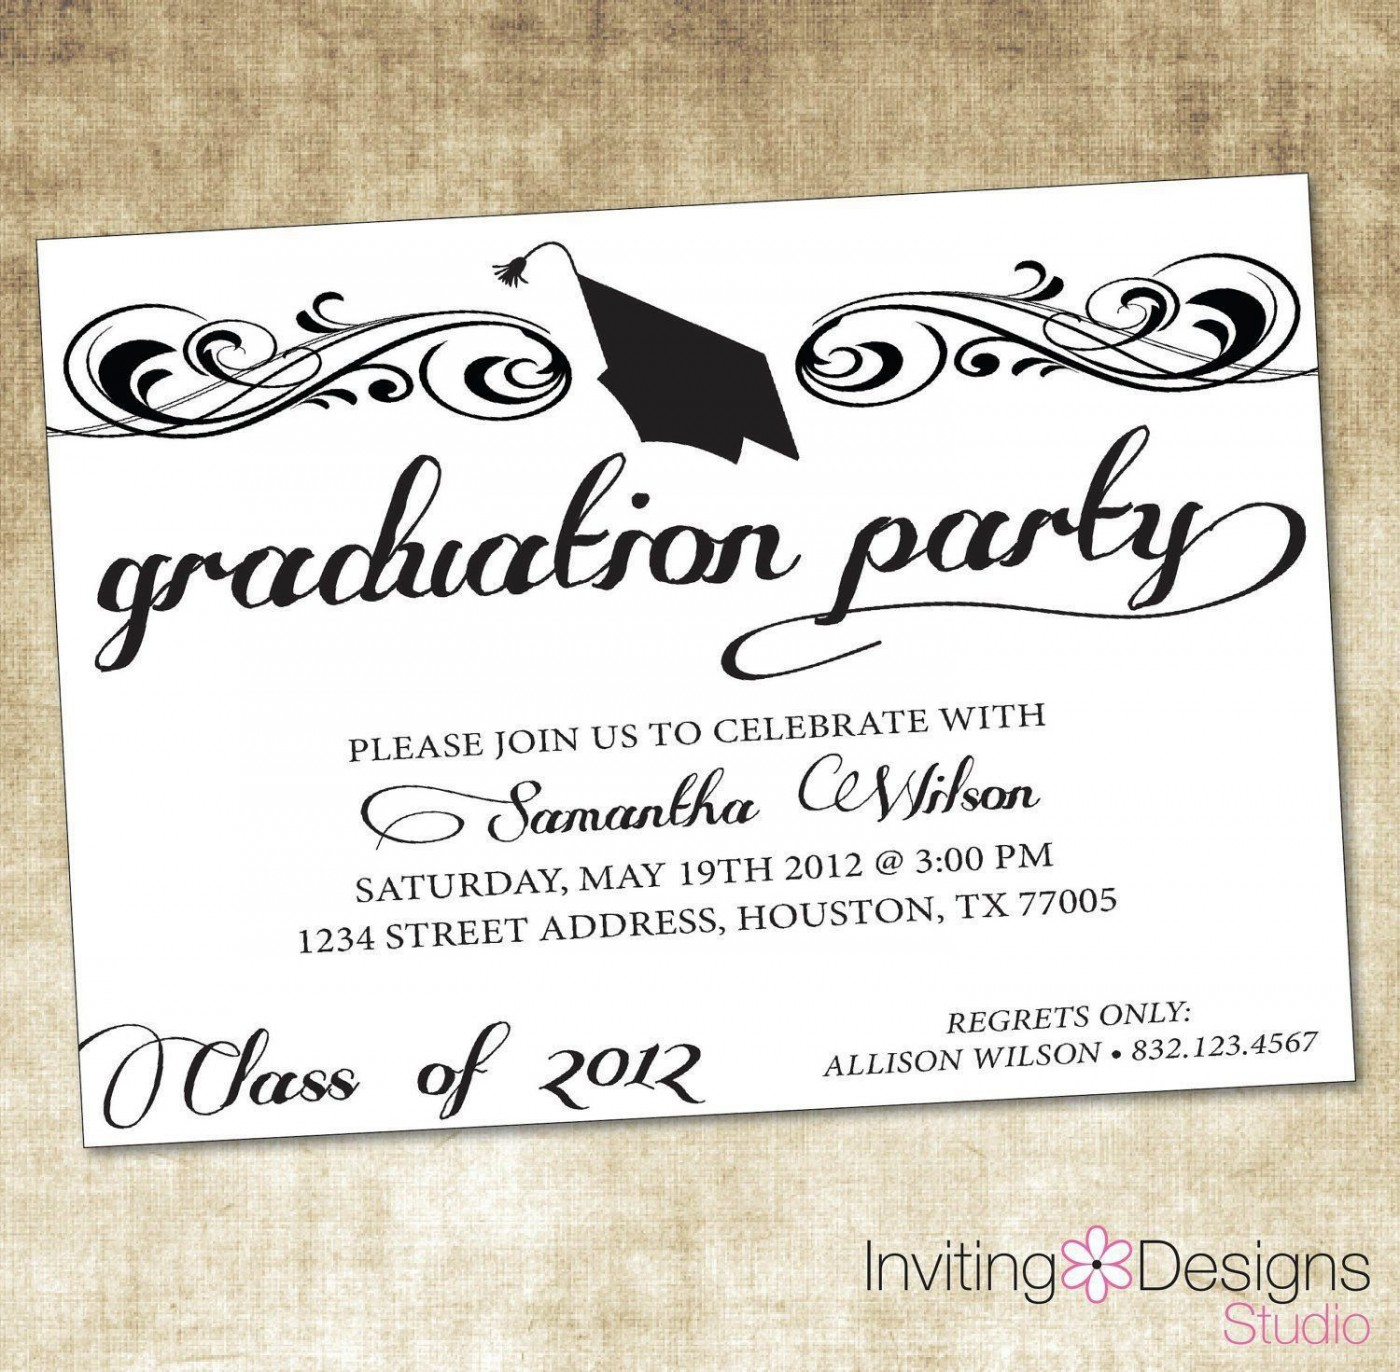 009 Exceptional Microsoft Word Graduation Party Invitation Template Concept 1400